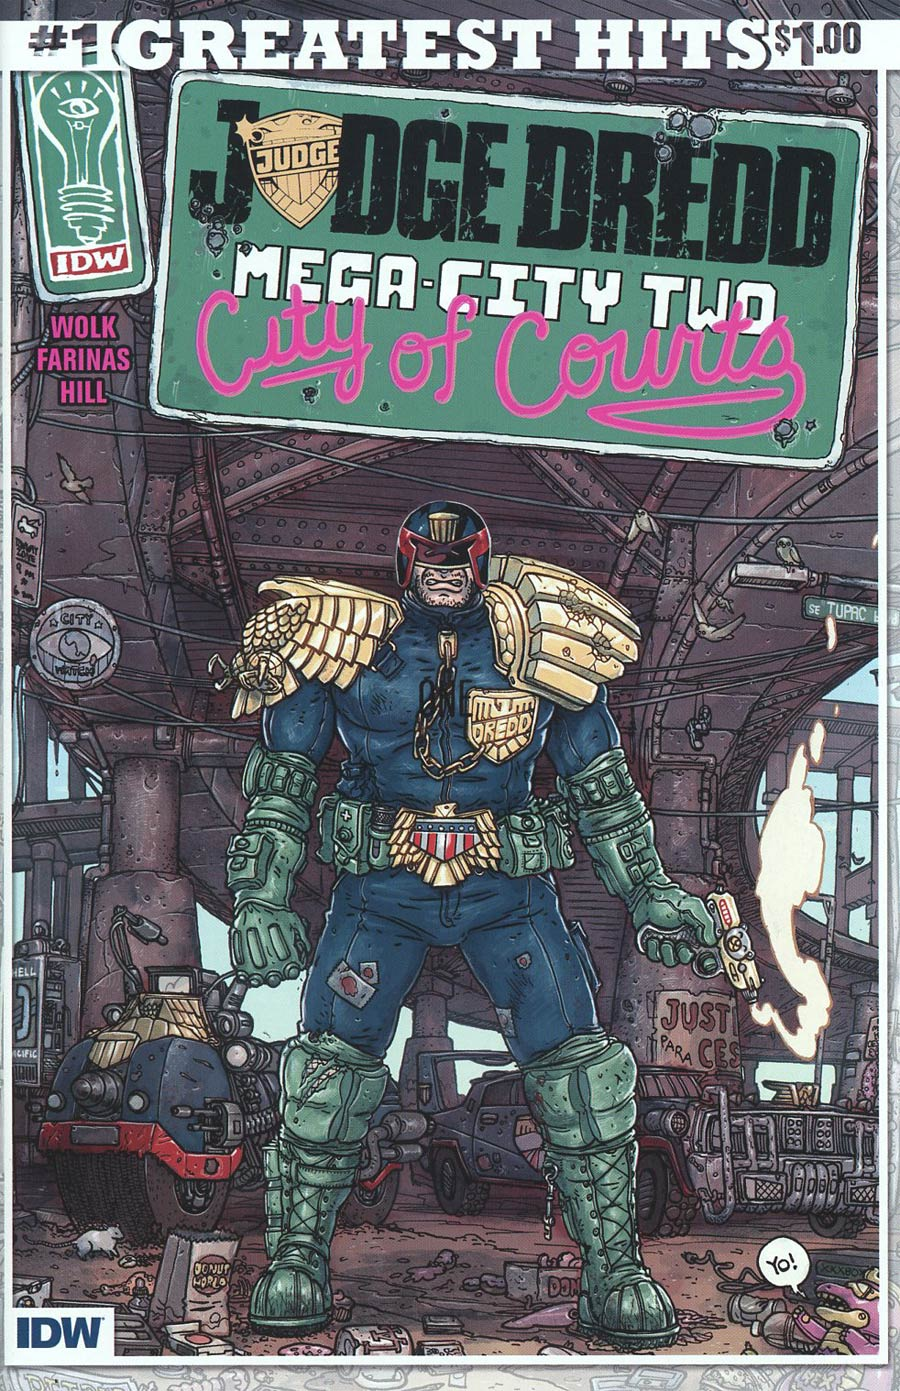 Judge Dredd Mega-City Two #1 Cover E IDWs Greatest Hits Edition